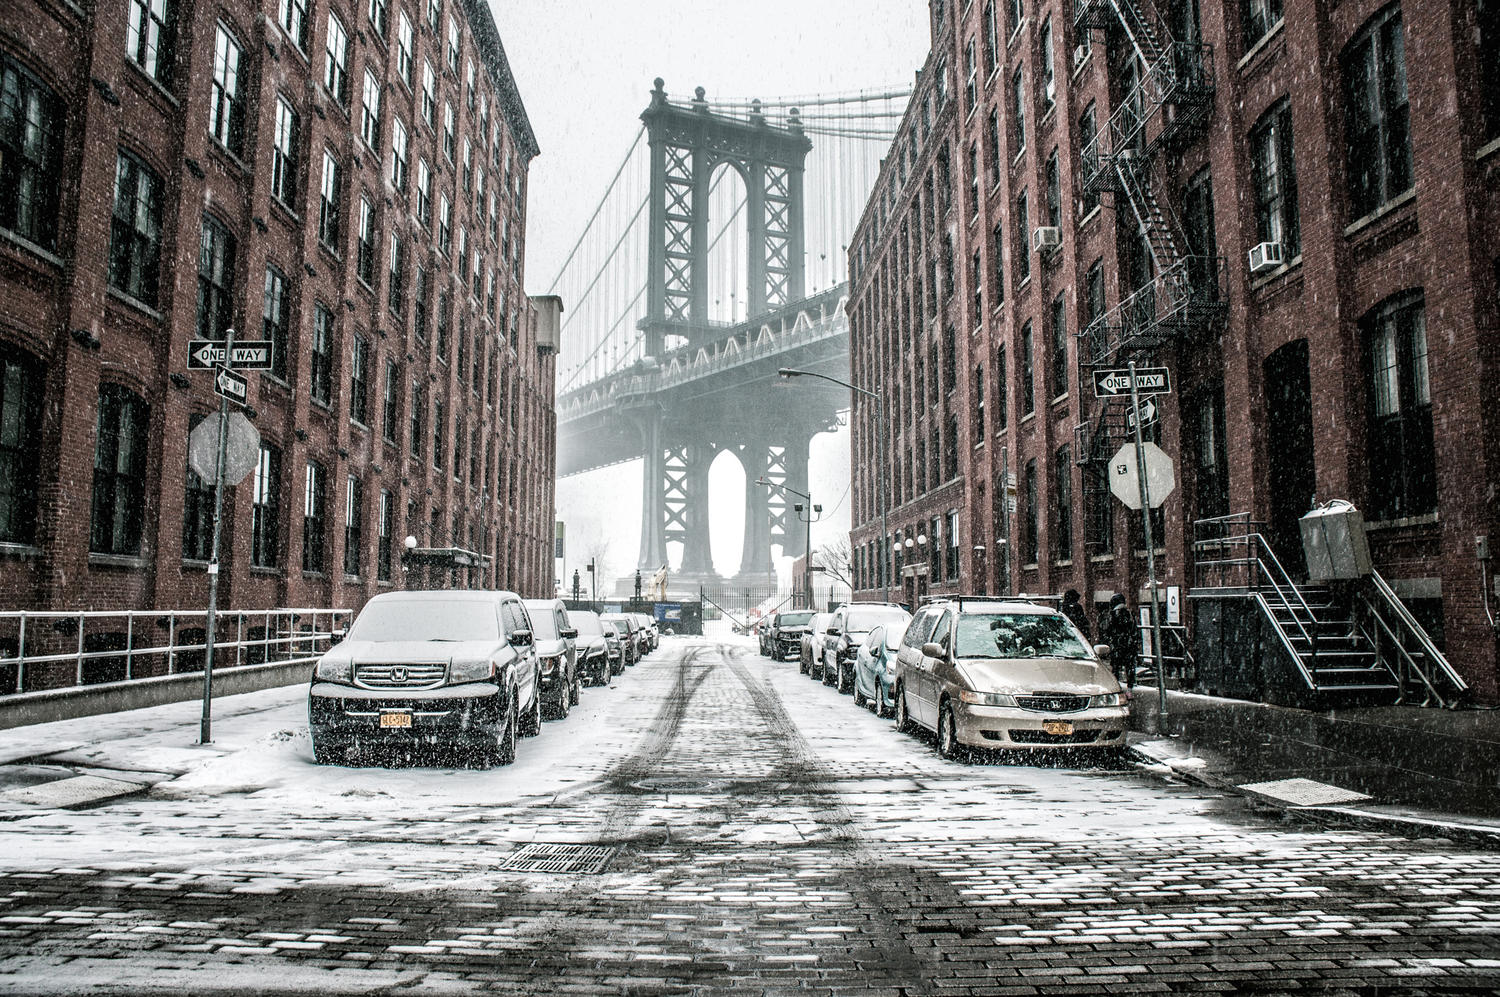 Winter in Brooklyn / Brooklyn, NY / 2015